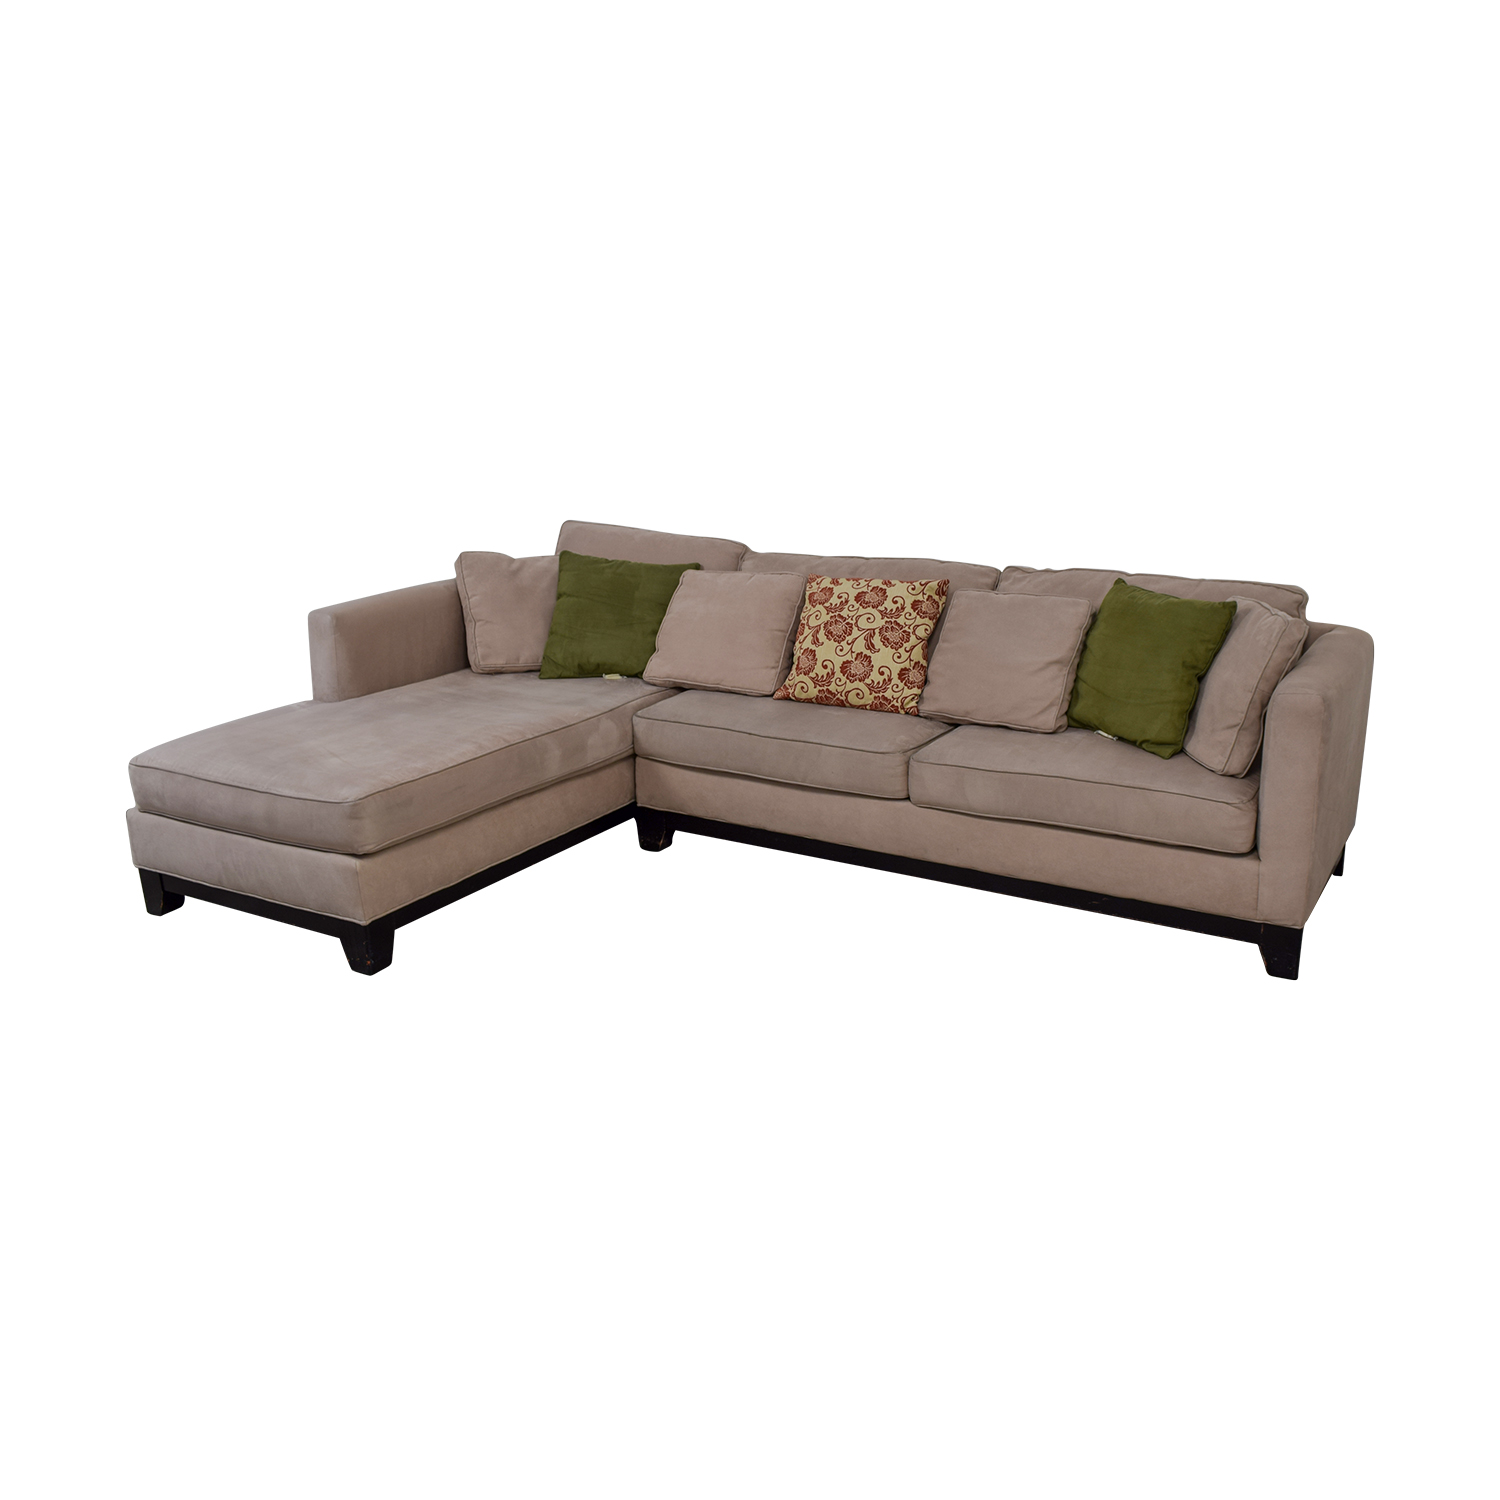 Prime 76 Off Macys Macys Microfiber Taupe Sectional Sofa Sofas Short Links Chair Design For Home Short Linksinfo